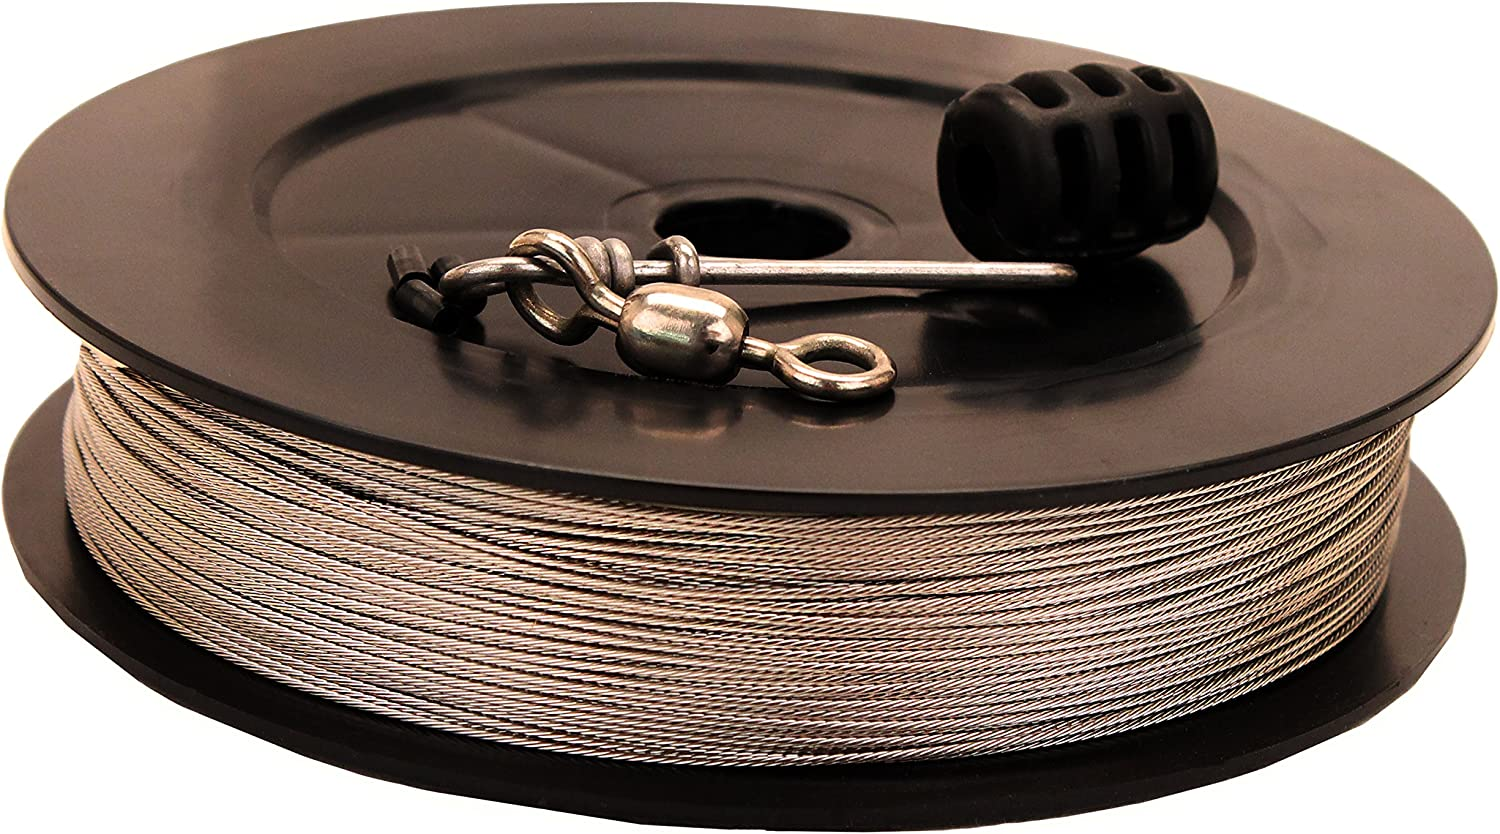 Factory outlet Scotty Stainless Steel Downrigger Cable - Terminal 400 Outlet sale feature W fe Kit